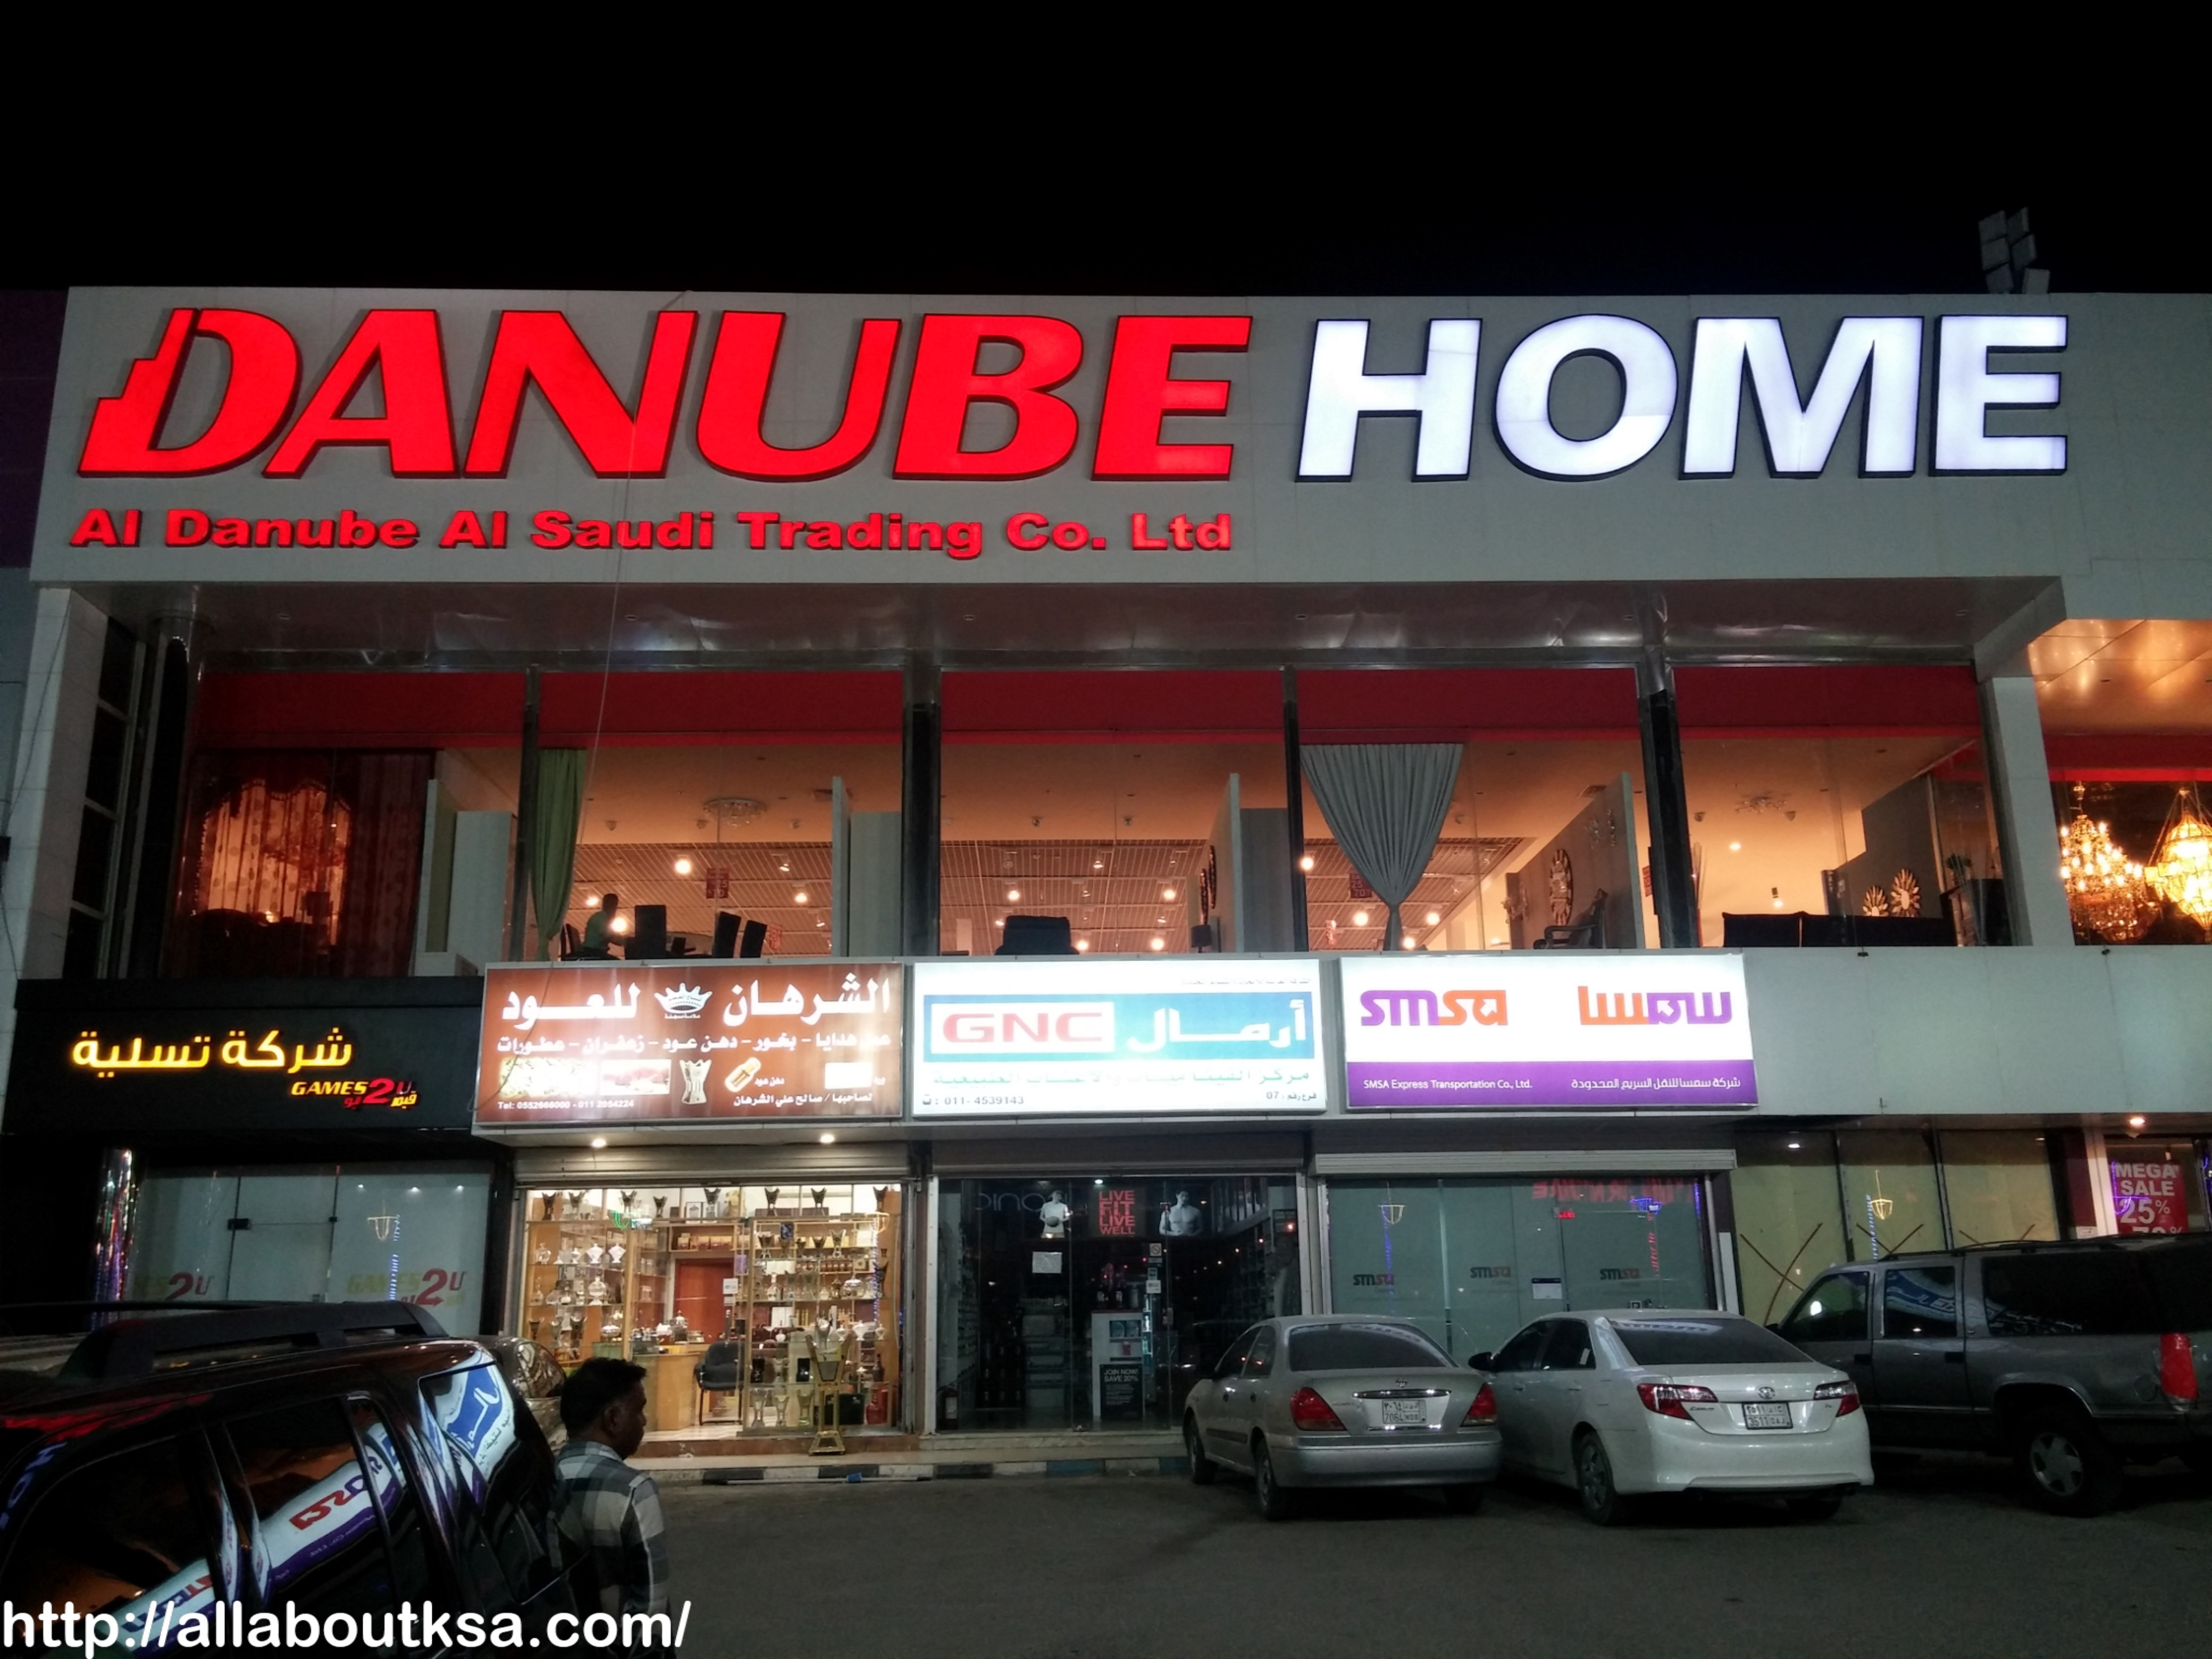 Danube Home: A Great place to buy furniture – All About KSA